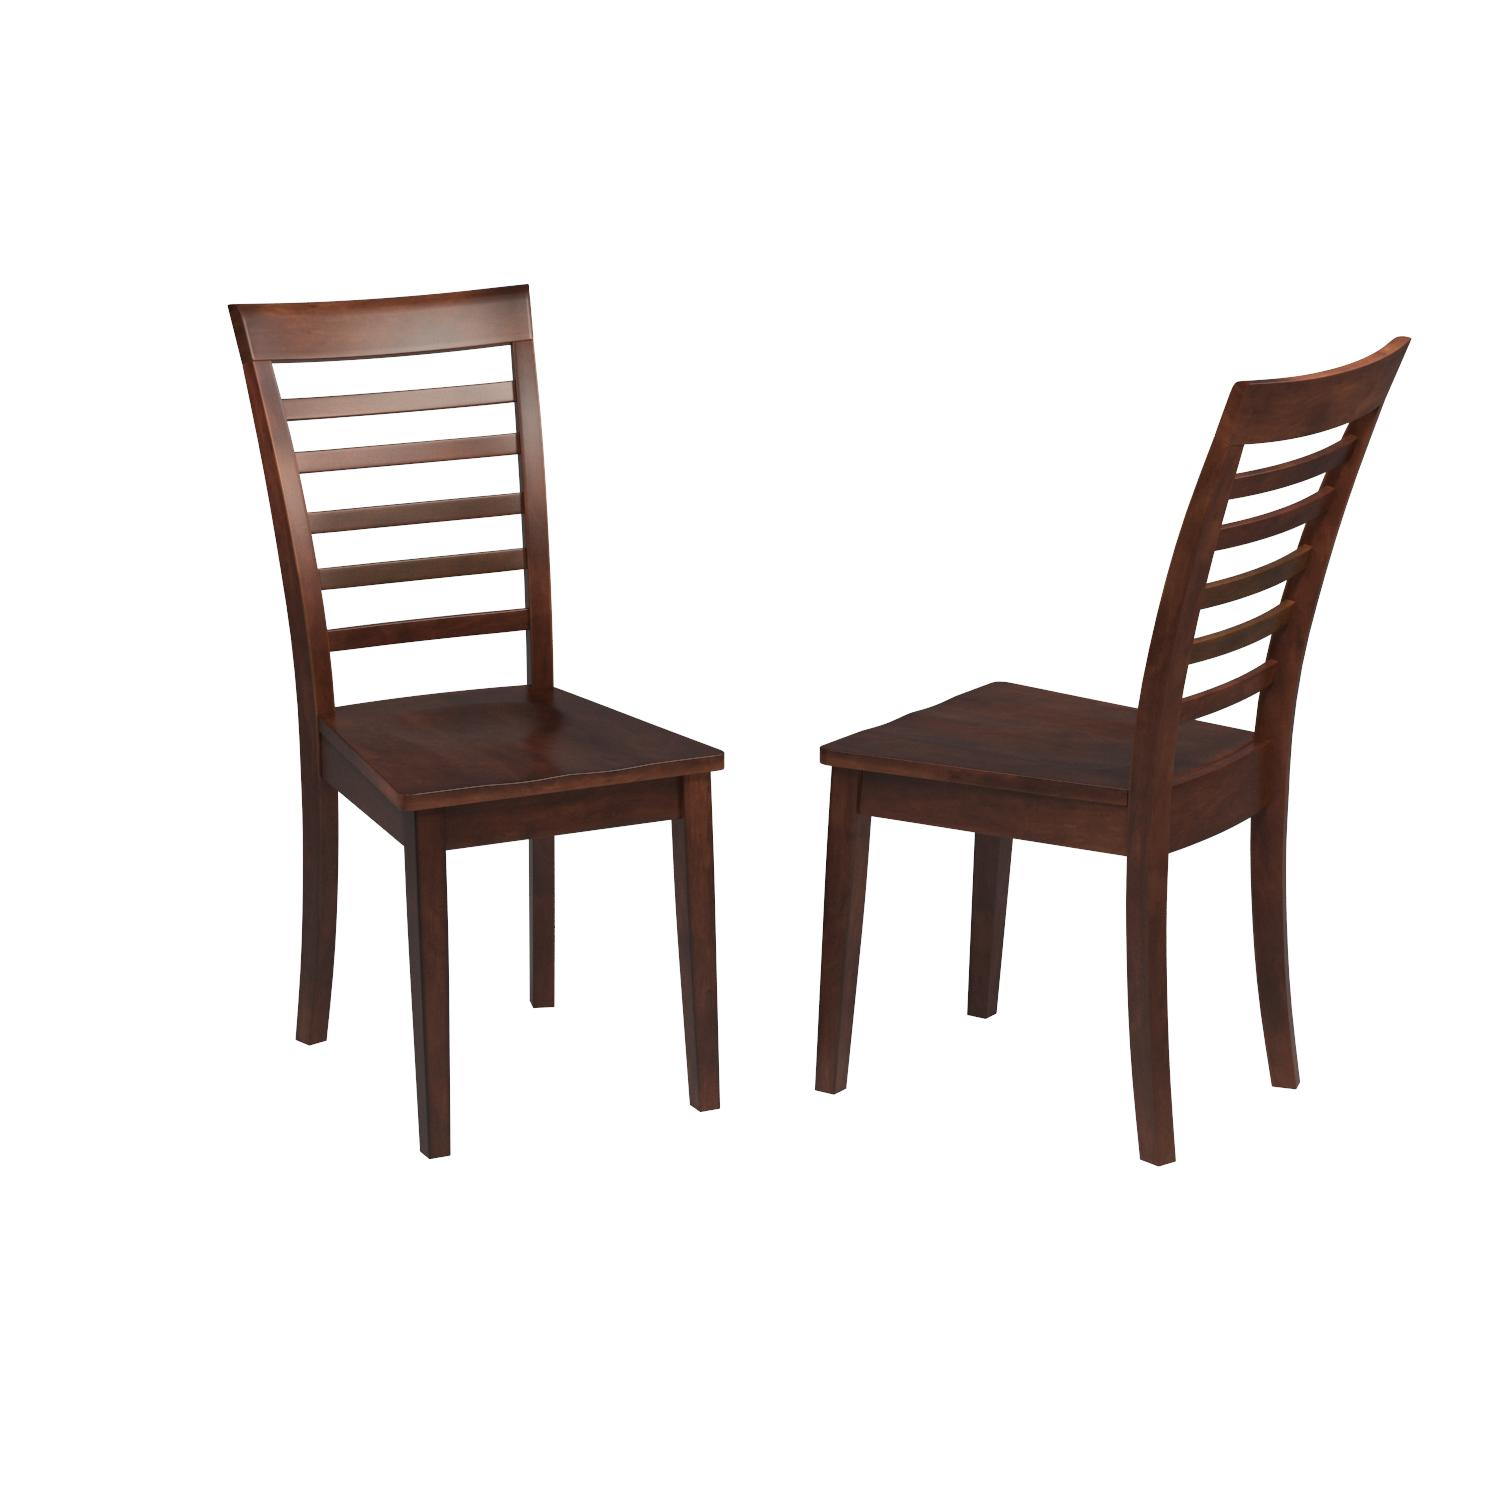 Amazon East West Furniture MLC MAH W Chair Set with Wood Seat